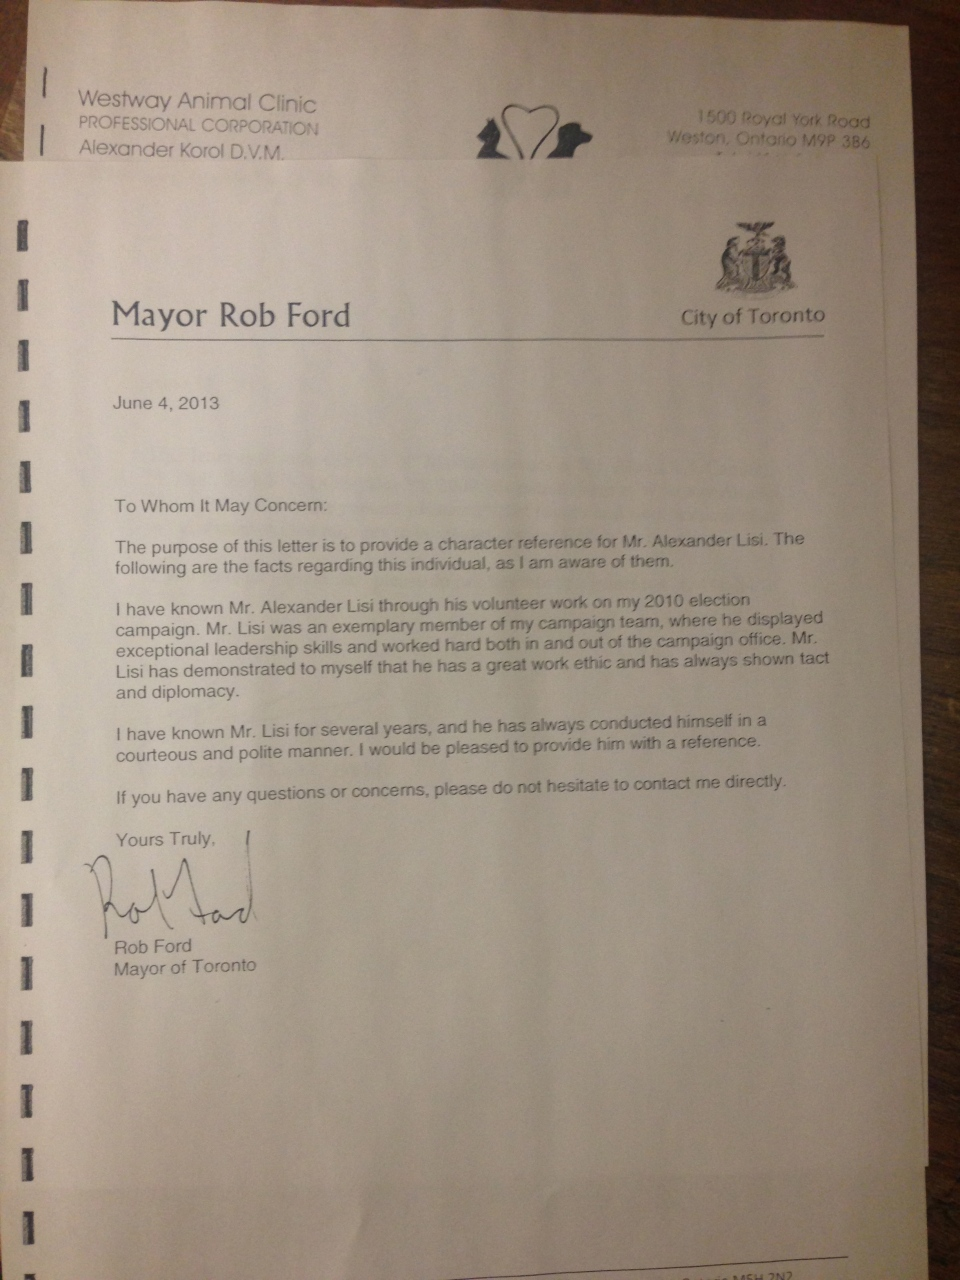 ford penned letters in support of convicted murderer and a